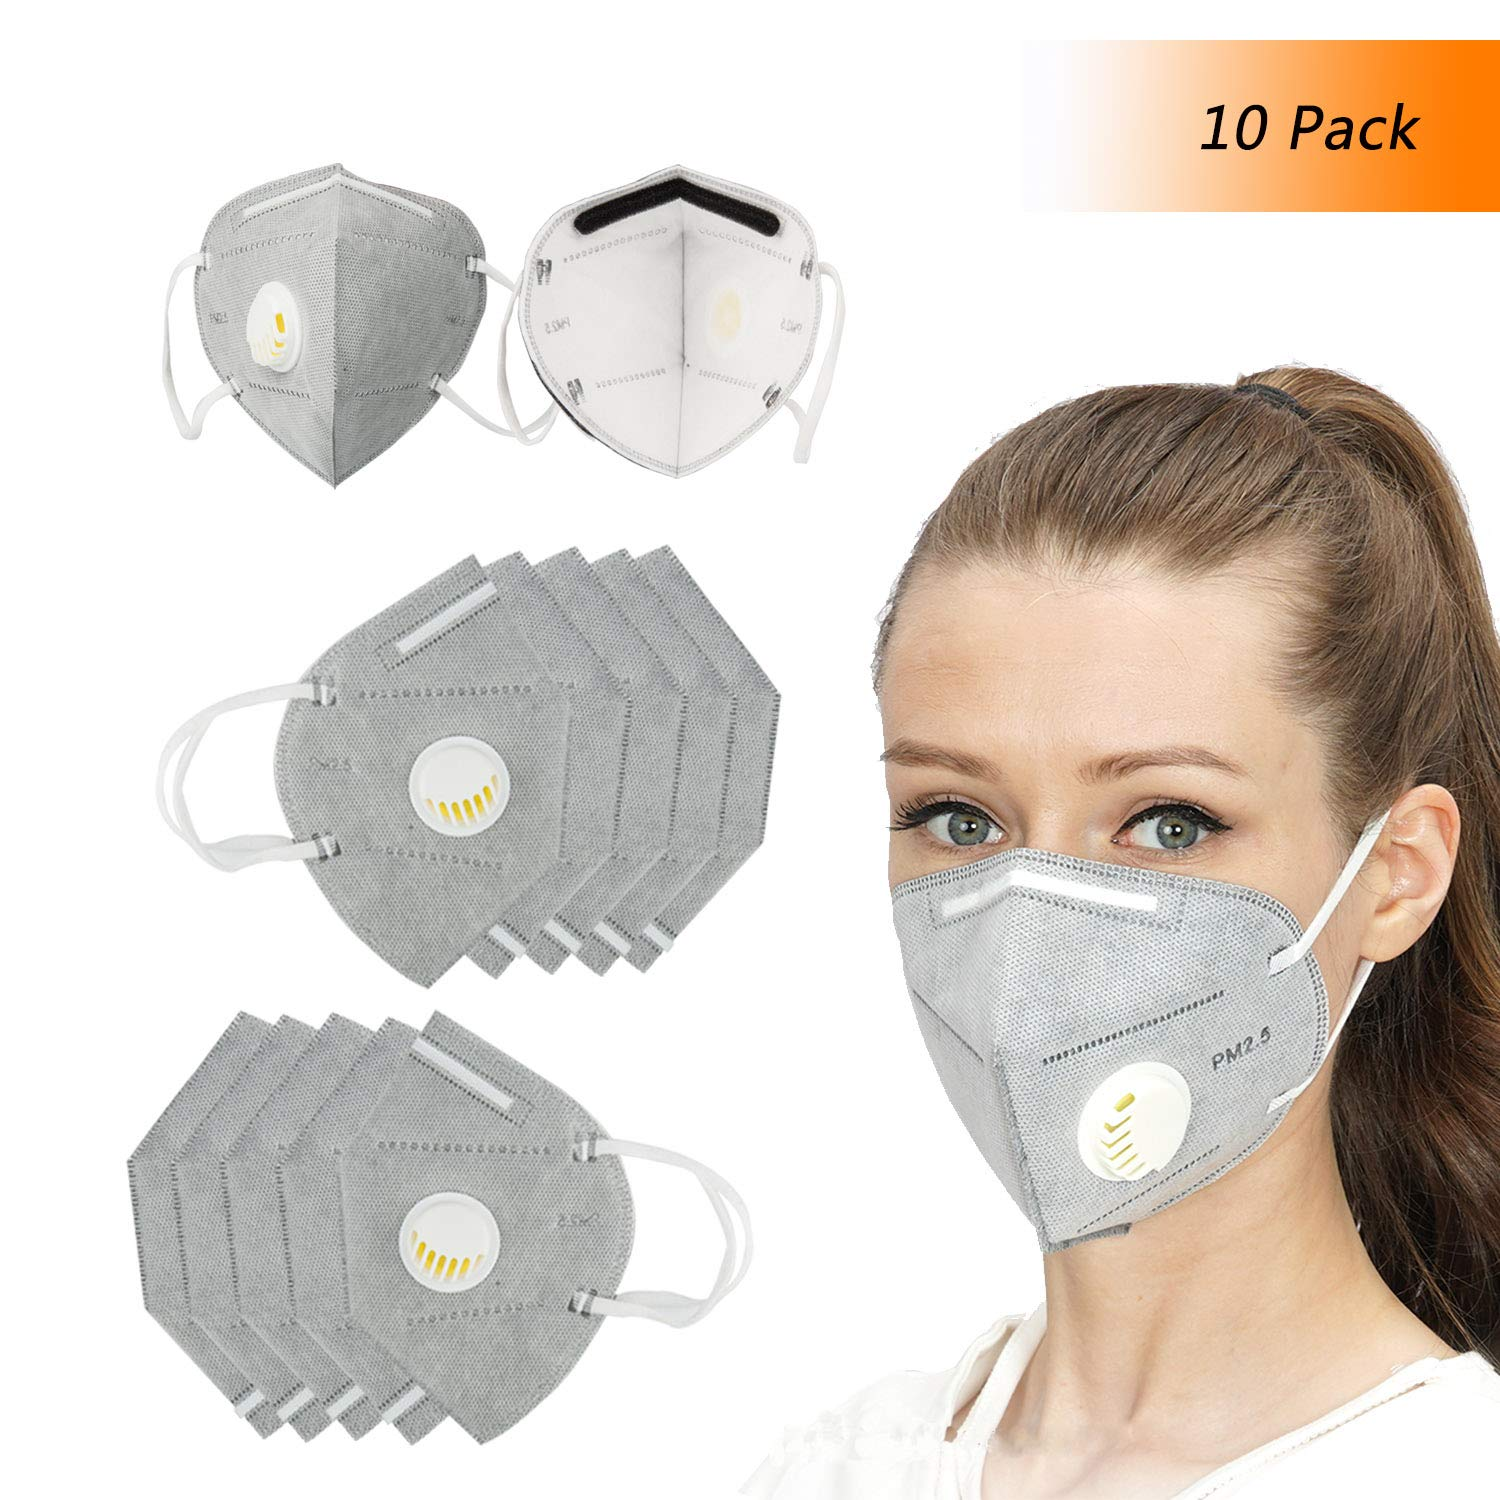 Gray Disposable Work Masks Winko For With 7 Flat Unisex Protection Face Mask Building Filter Mouth Layer N95 Dust respirator Fold